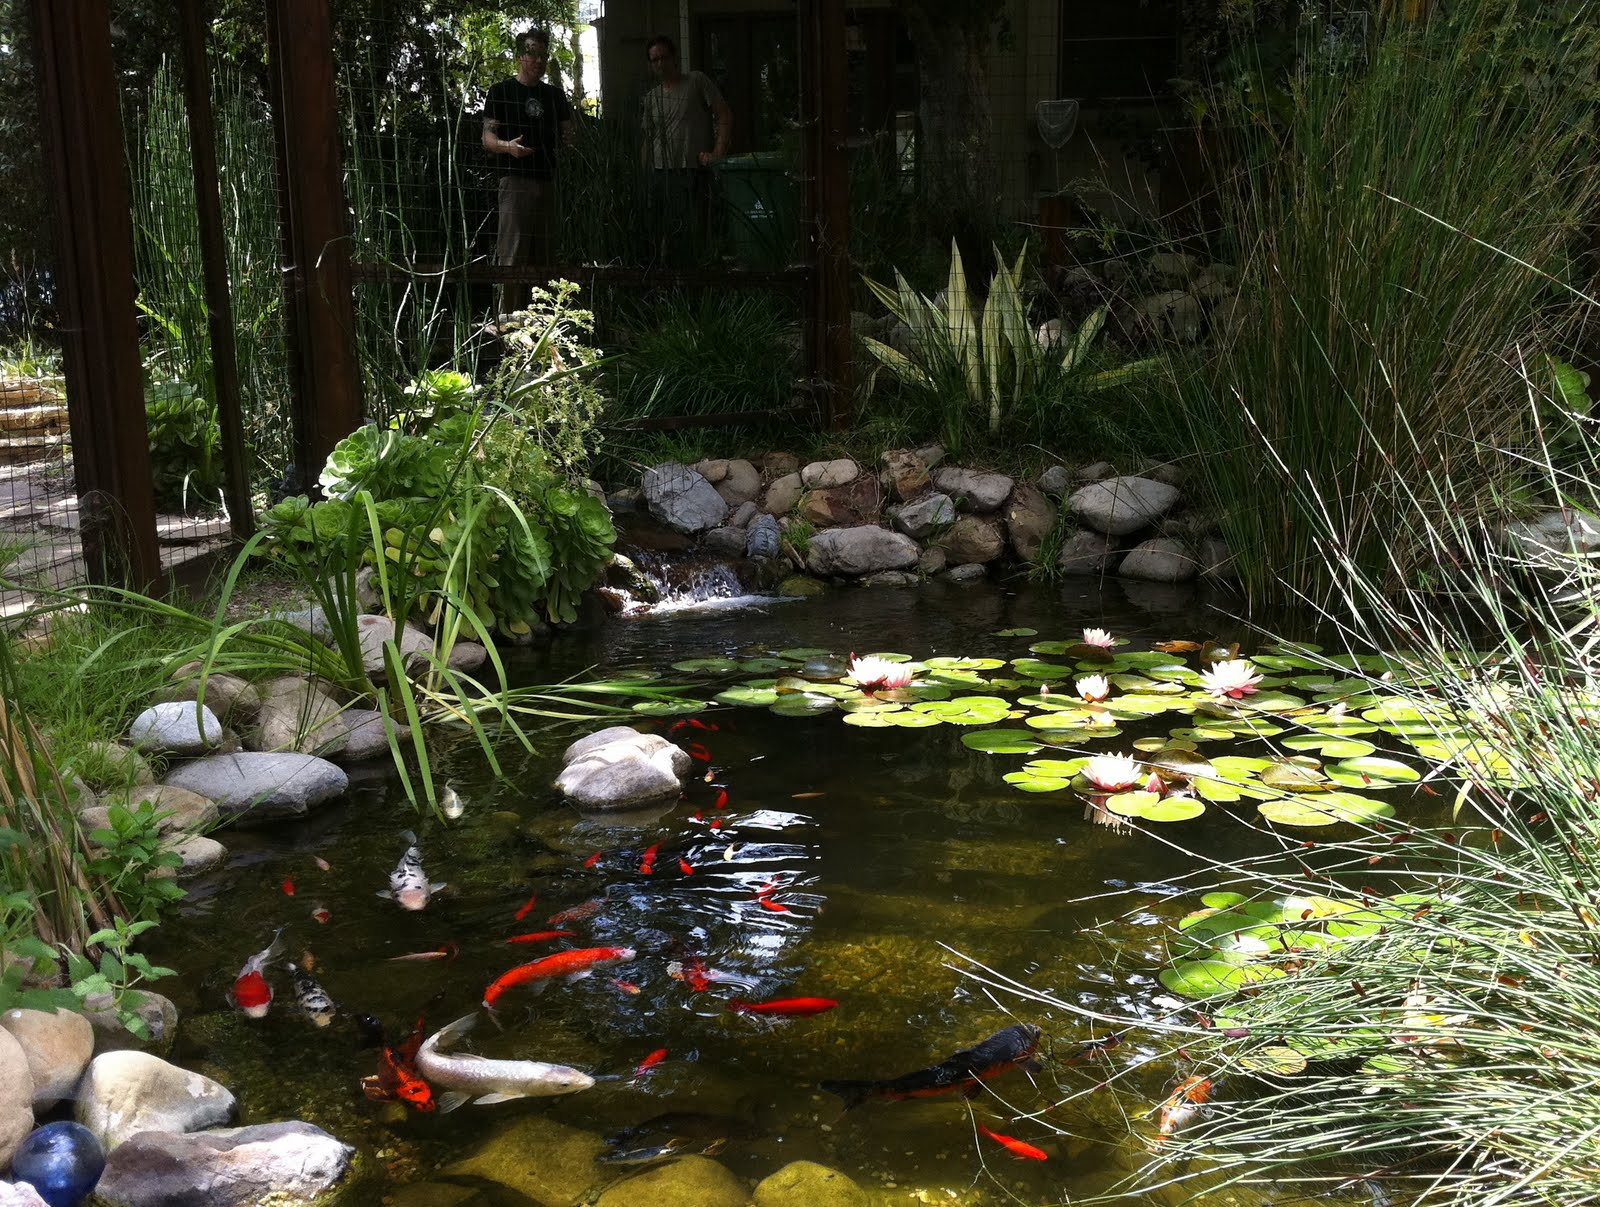 Elgin eco house garden serenity in the midst of the city for Koi water garden